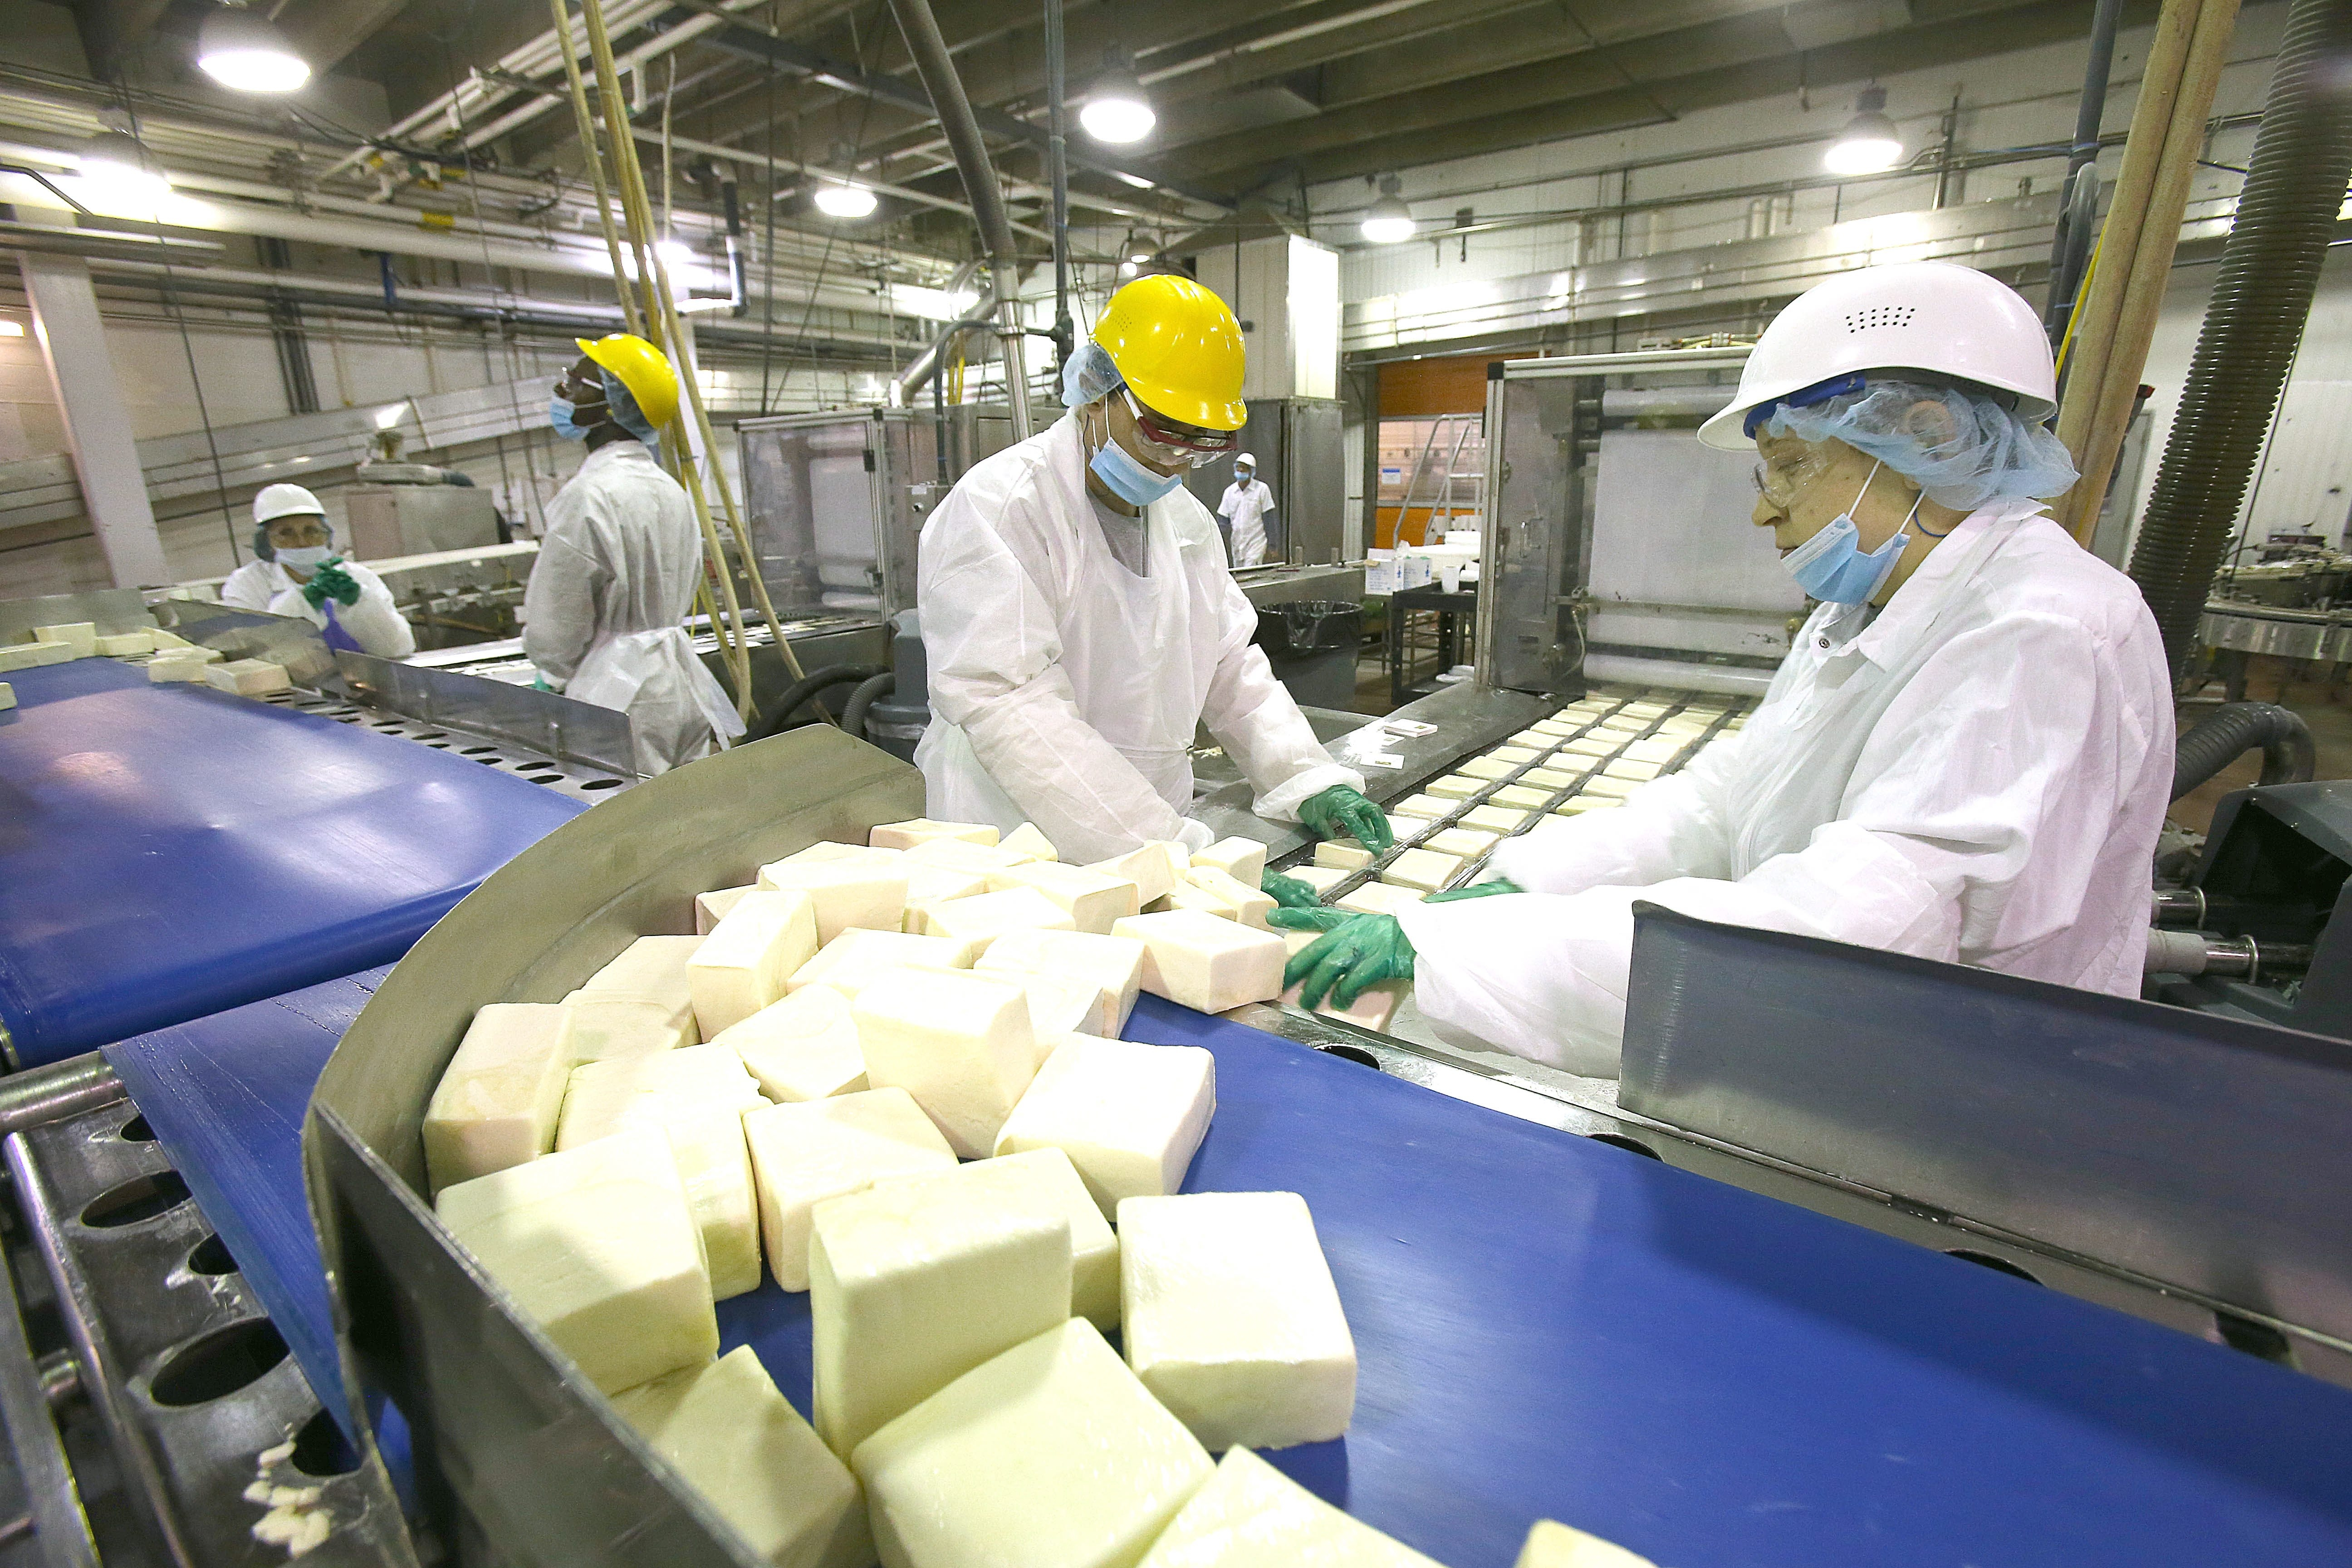 Sorrento employees load freeh blocks of Mozzerella  at the South Park Ave. plant. (New file photo)